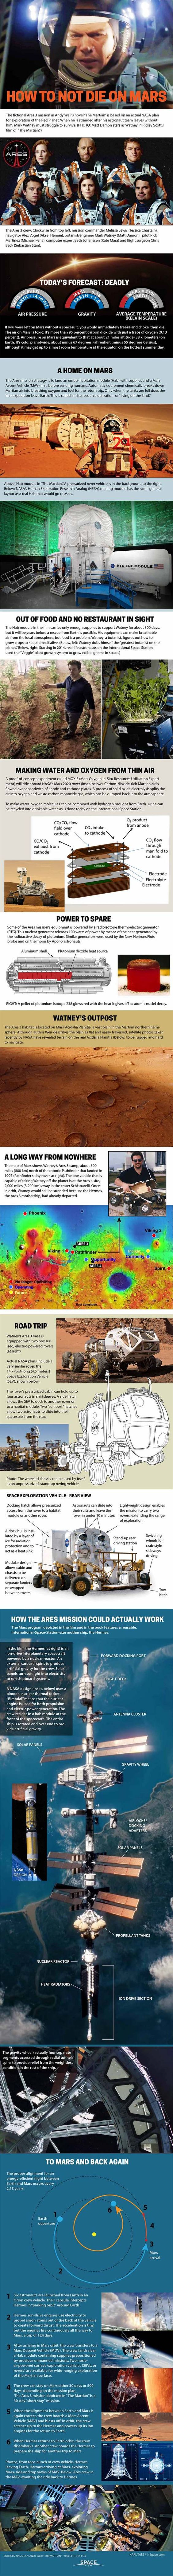 """Surviving 'The Martian': How to Stay Alive on Mars (Infographic) By Karl Tate, Infographics Artist   